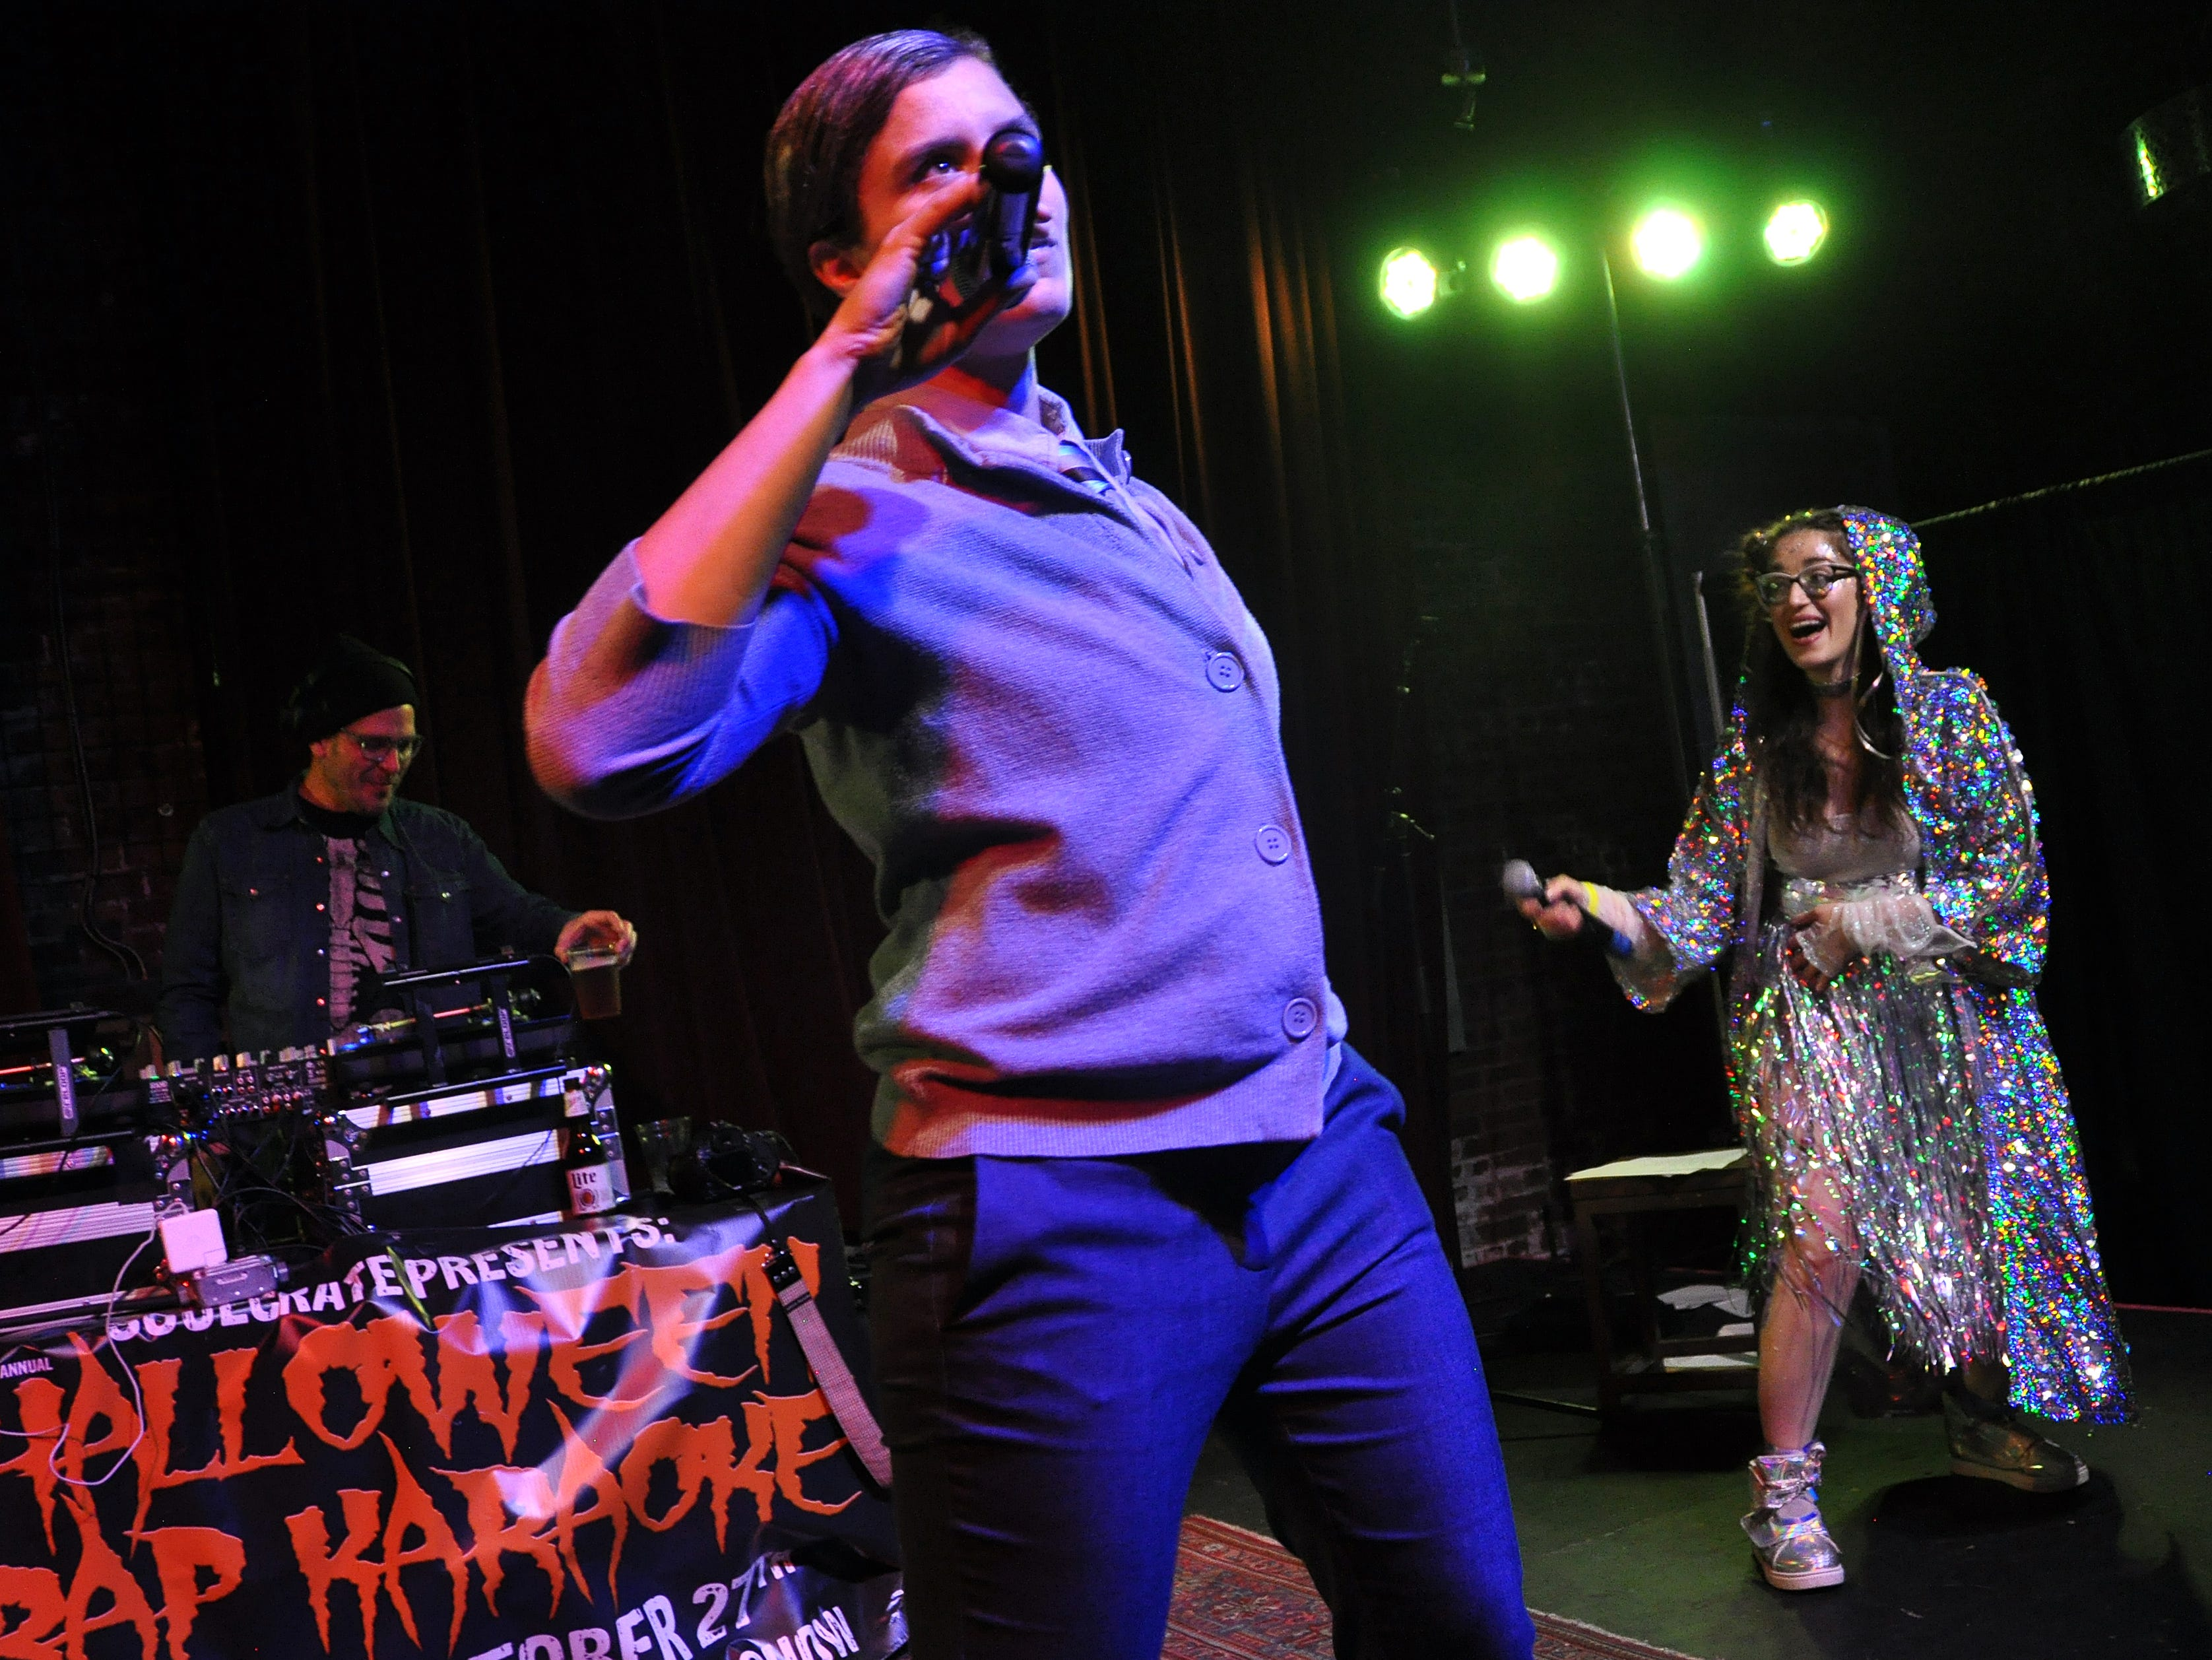 Mary Campbell, left, and Catherine Holland perform during the 10th Annual Halloween Rap Karaoke show at Icon Lounge Friday night. The event is was created by the Sioux Falls band Soulcrate.